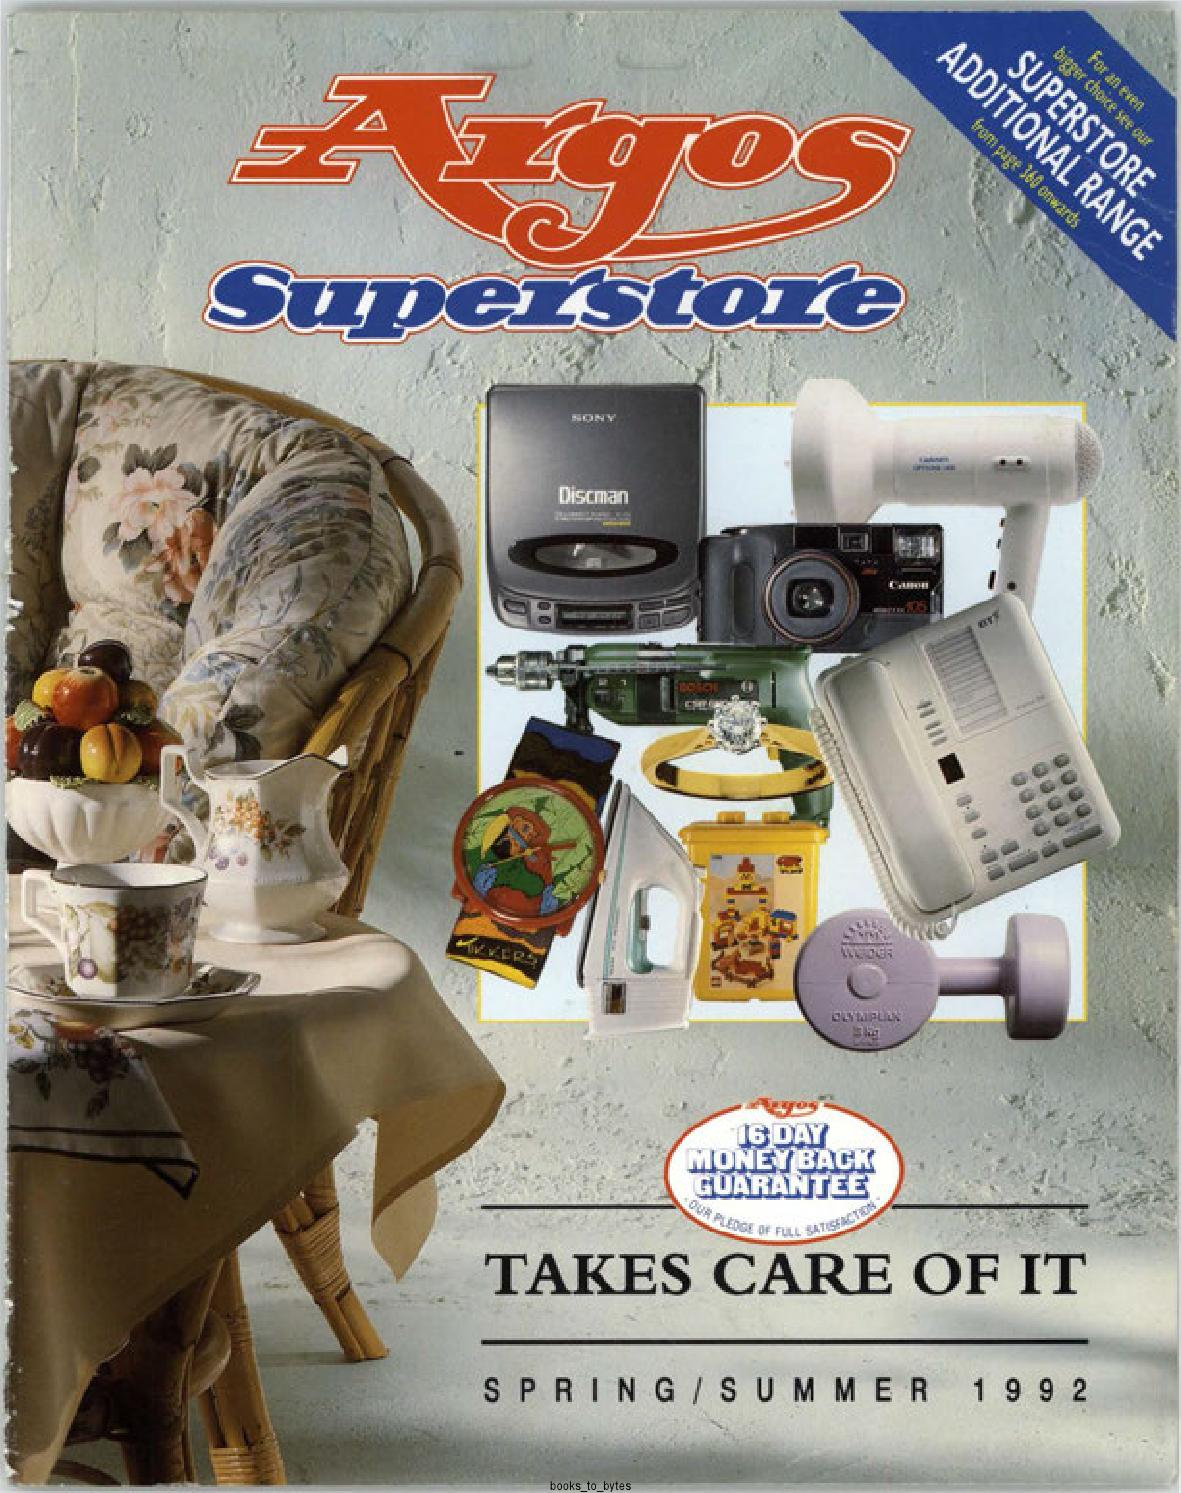 E Furniture Superstore